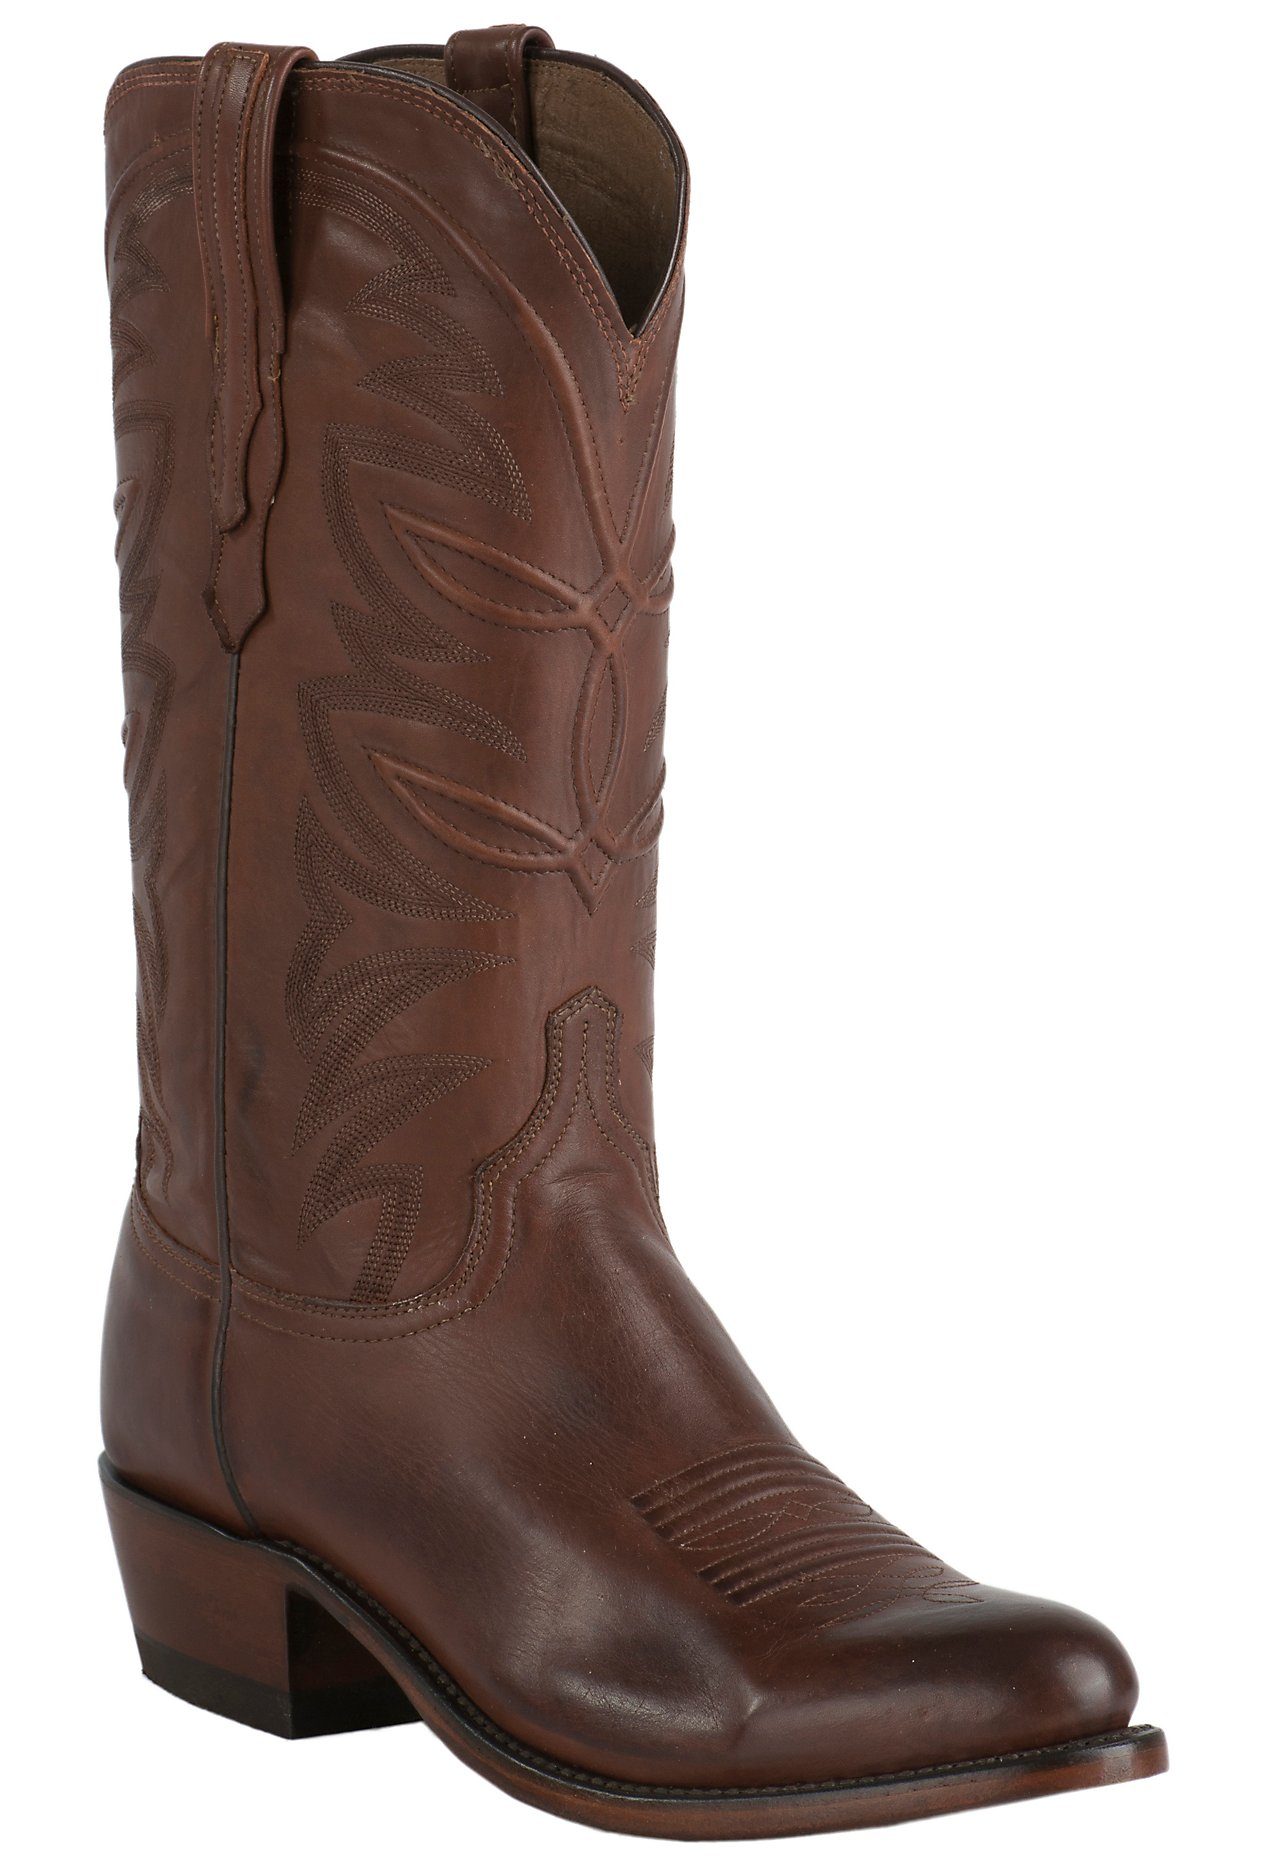 Find Great For Sale WIDE FIT - Cowboy/Biker boots - whisky In China Cheap Price N729T54WZ